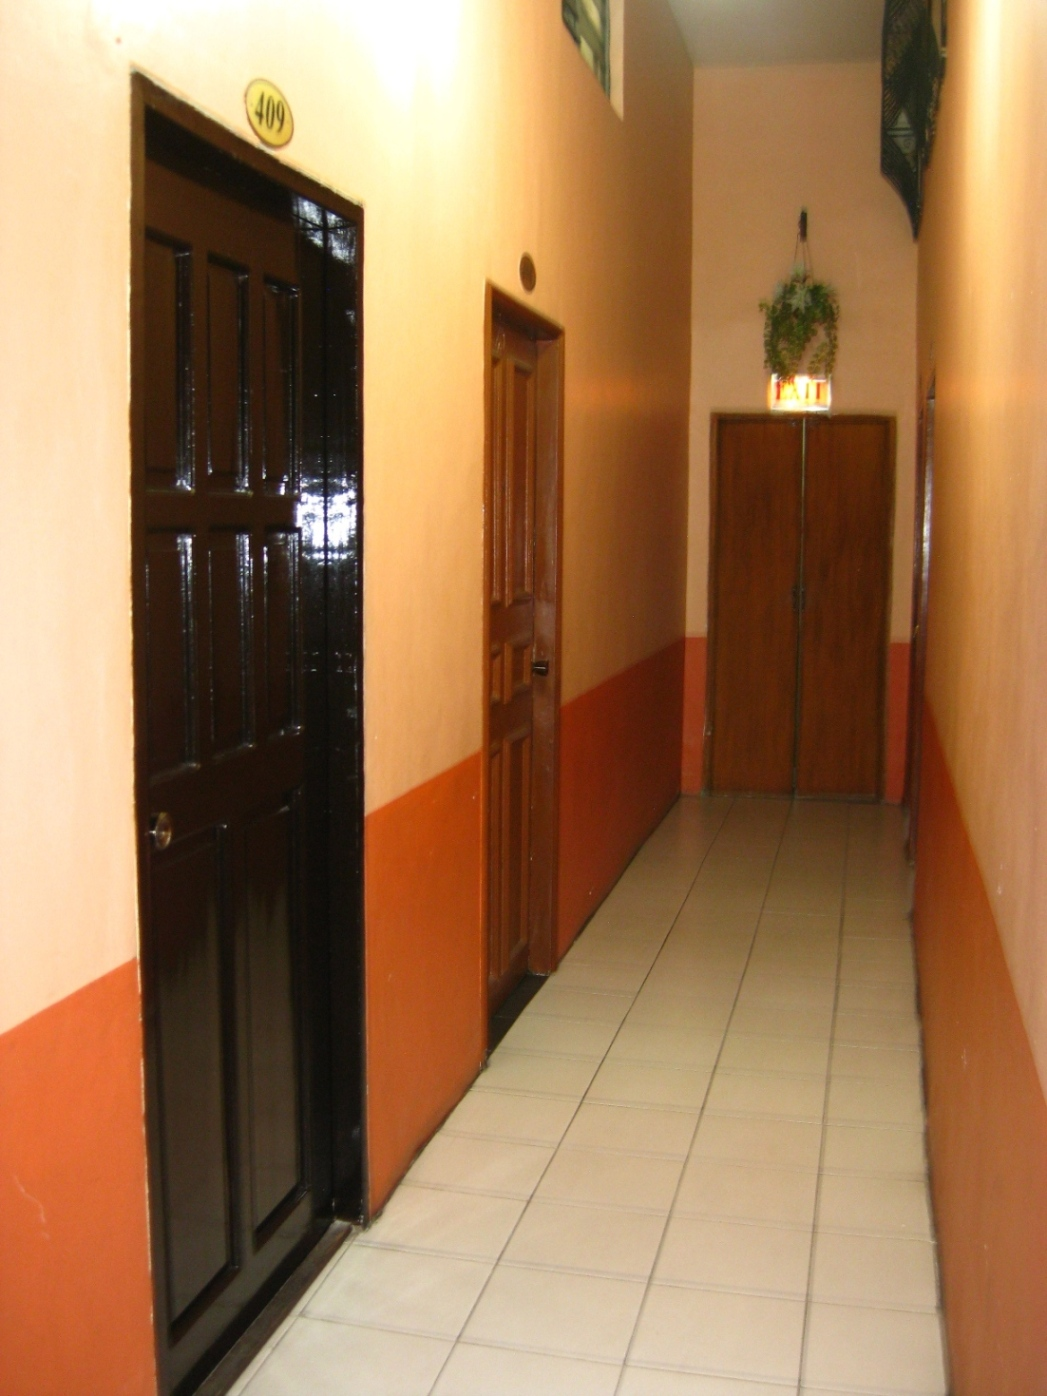 Hallway to Unit - http://www.renttoown.ph